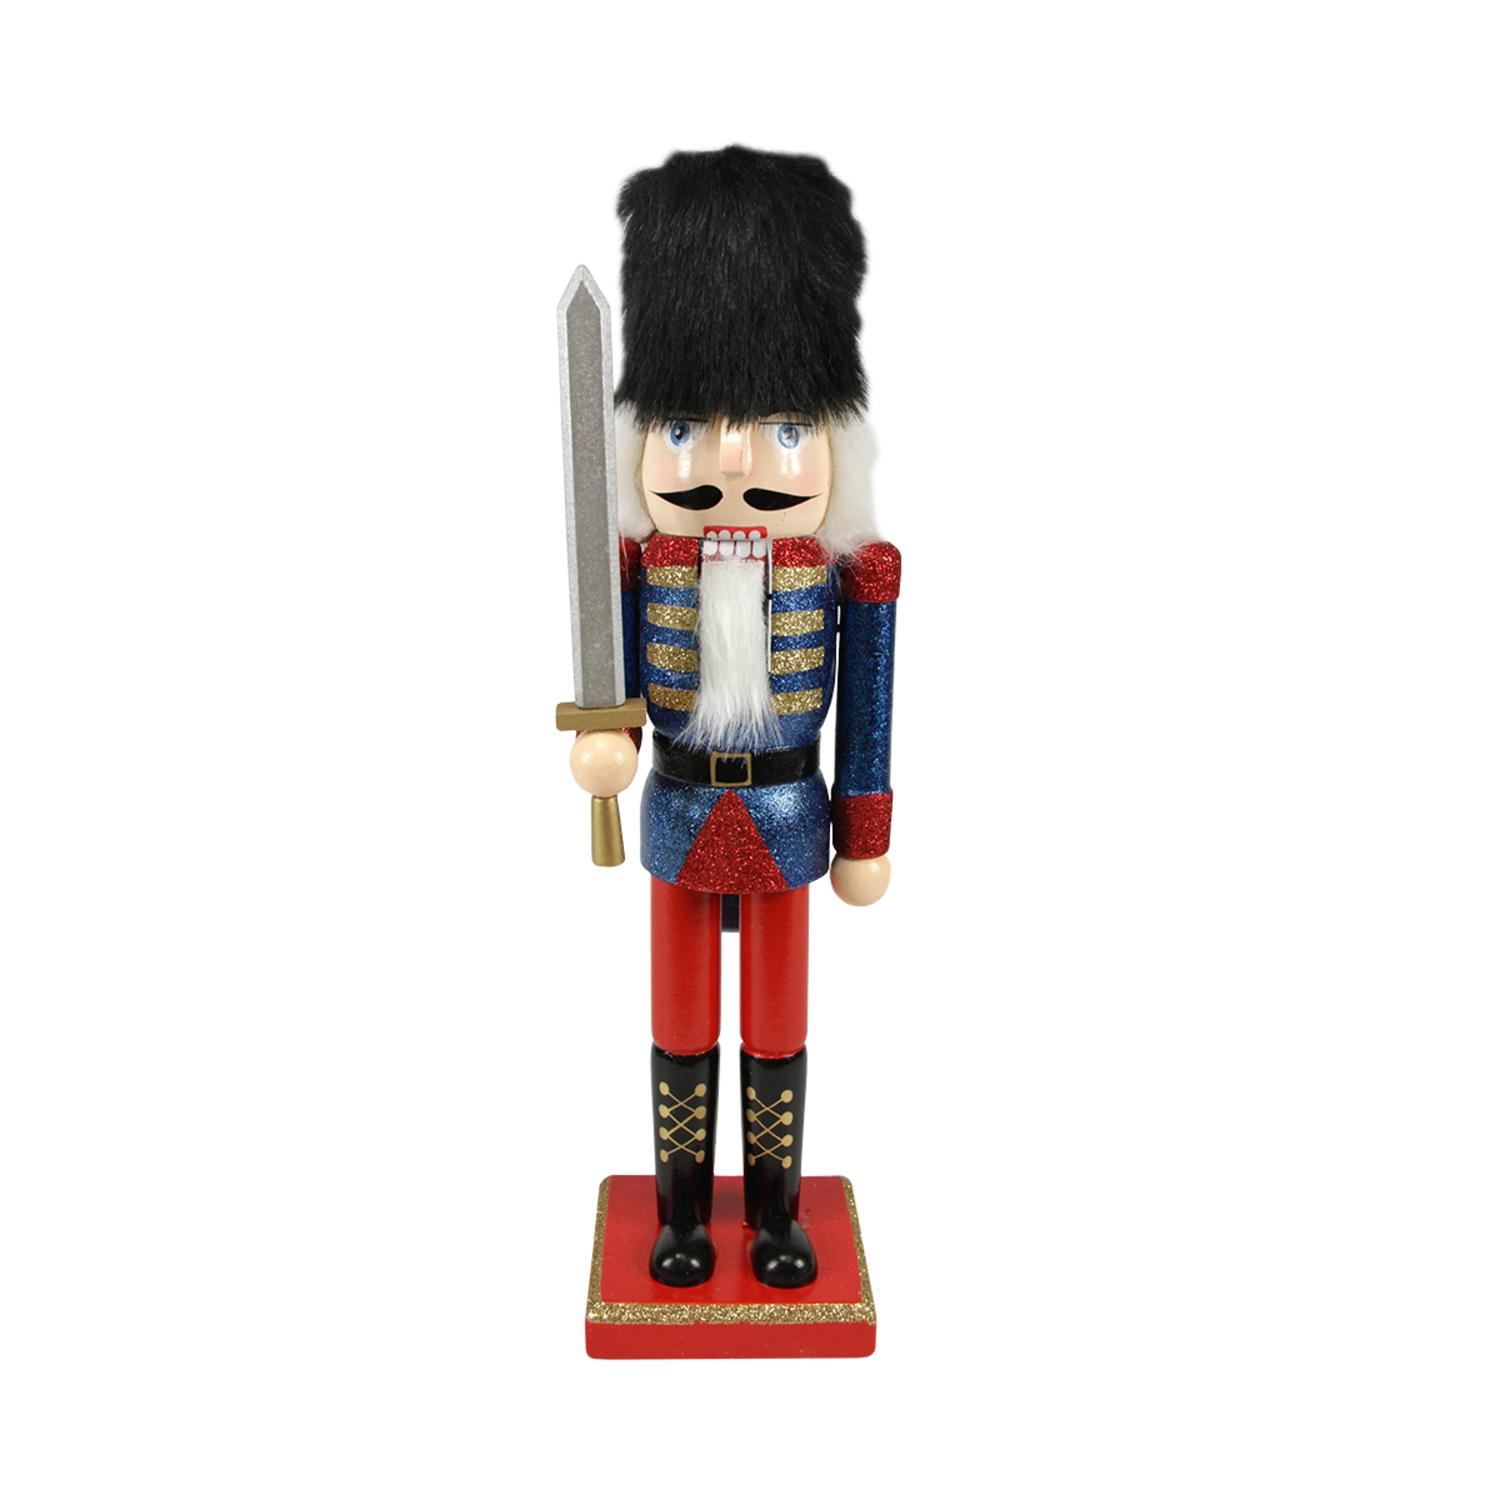 ''14.25'''' Decorative Wooden Blue  Red and Gold Glittered Christmas Nutcracker Soldier with SWORD''